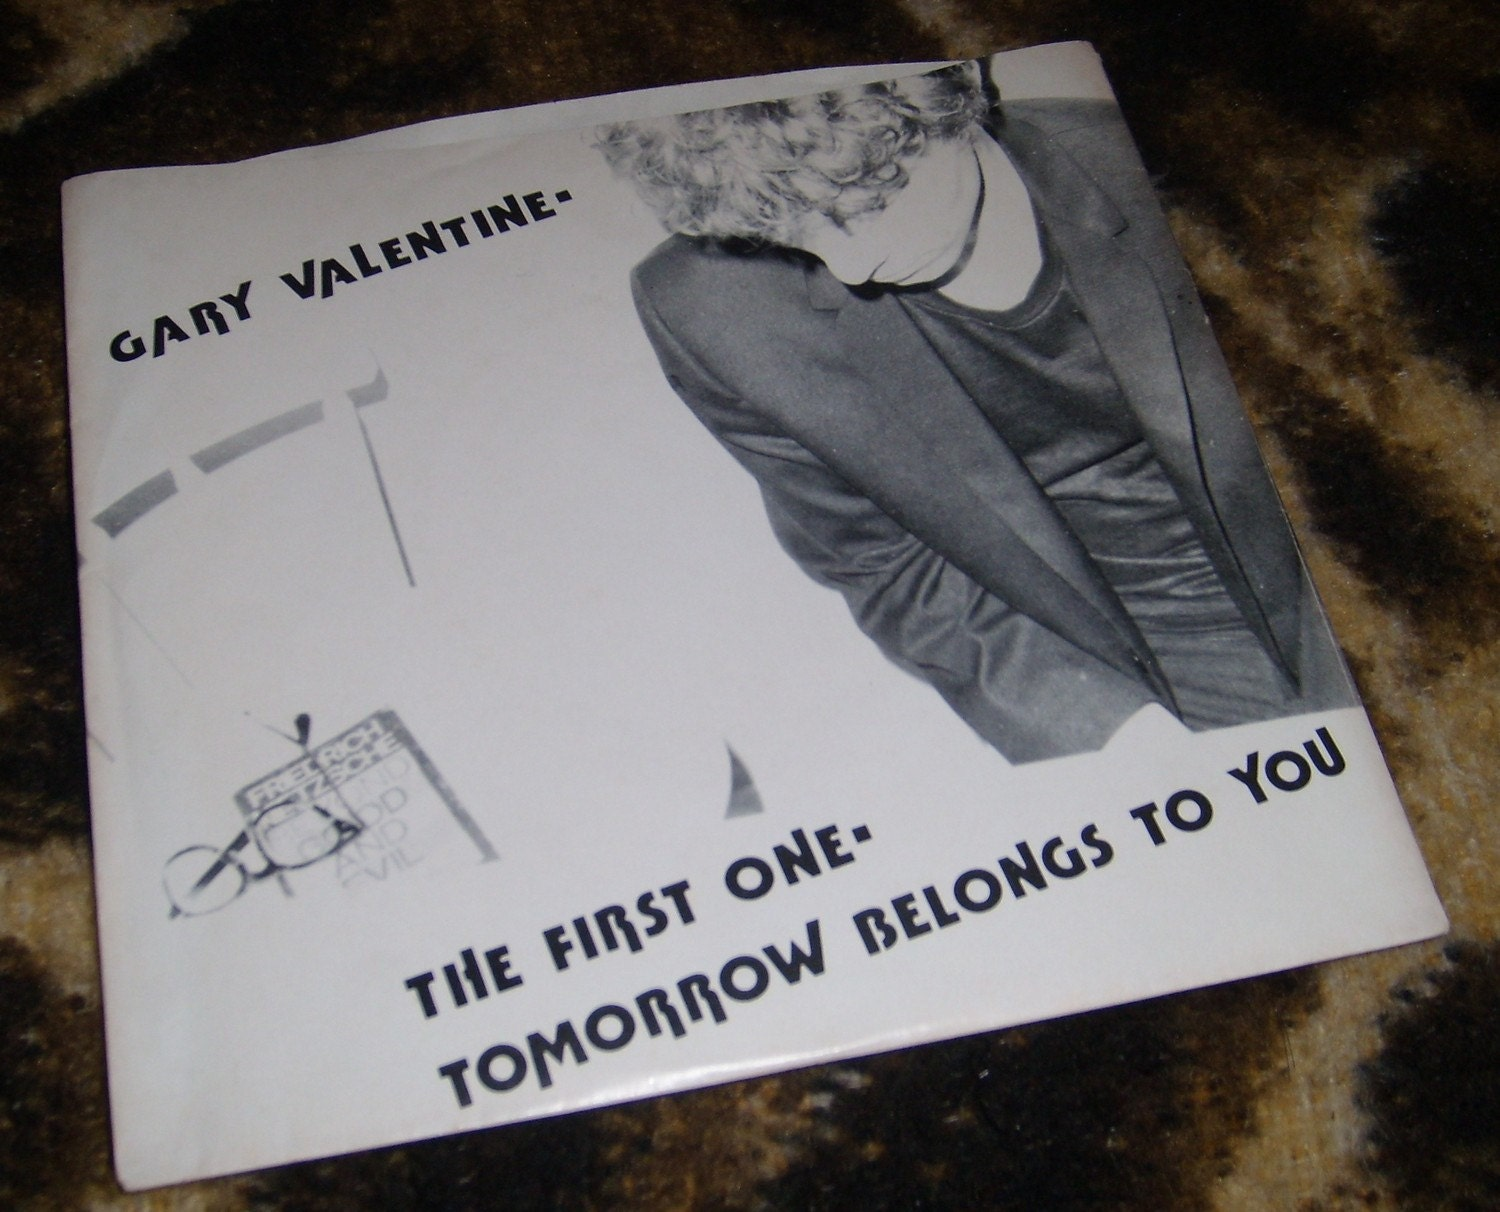 Gary Valentine The First One/Tomorrow Belongs to You 45 Beat 001 Blondie